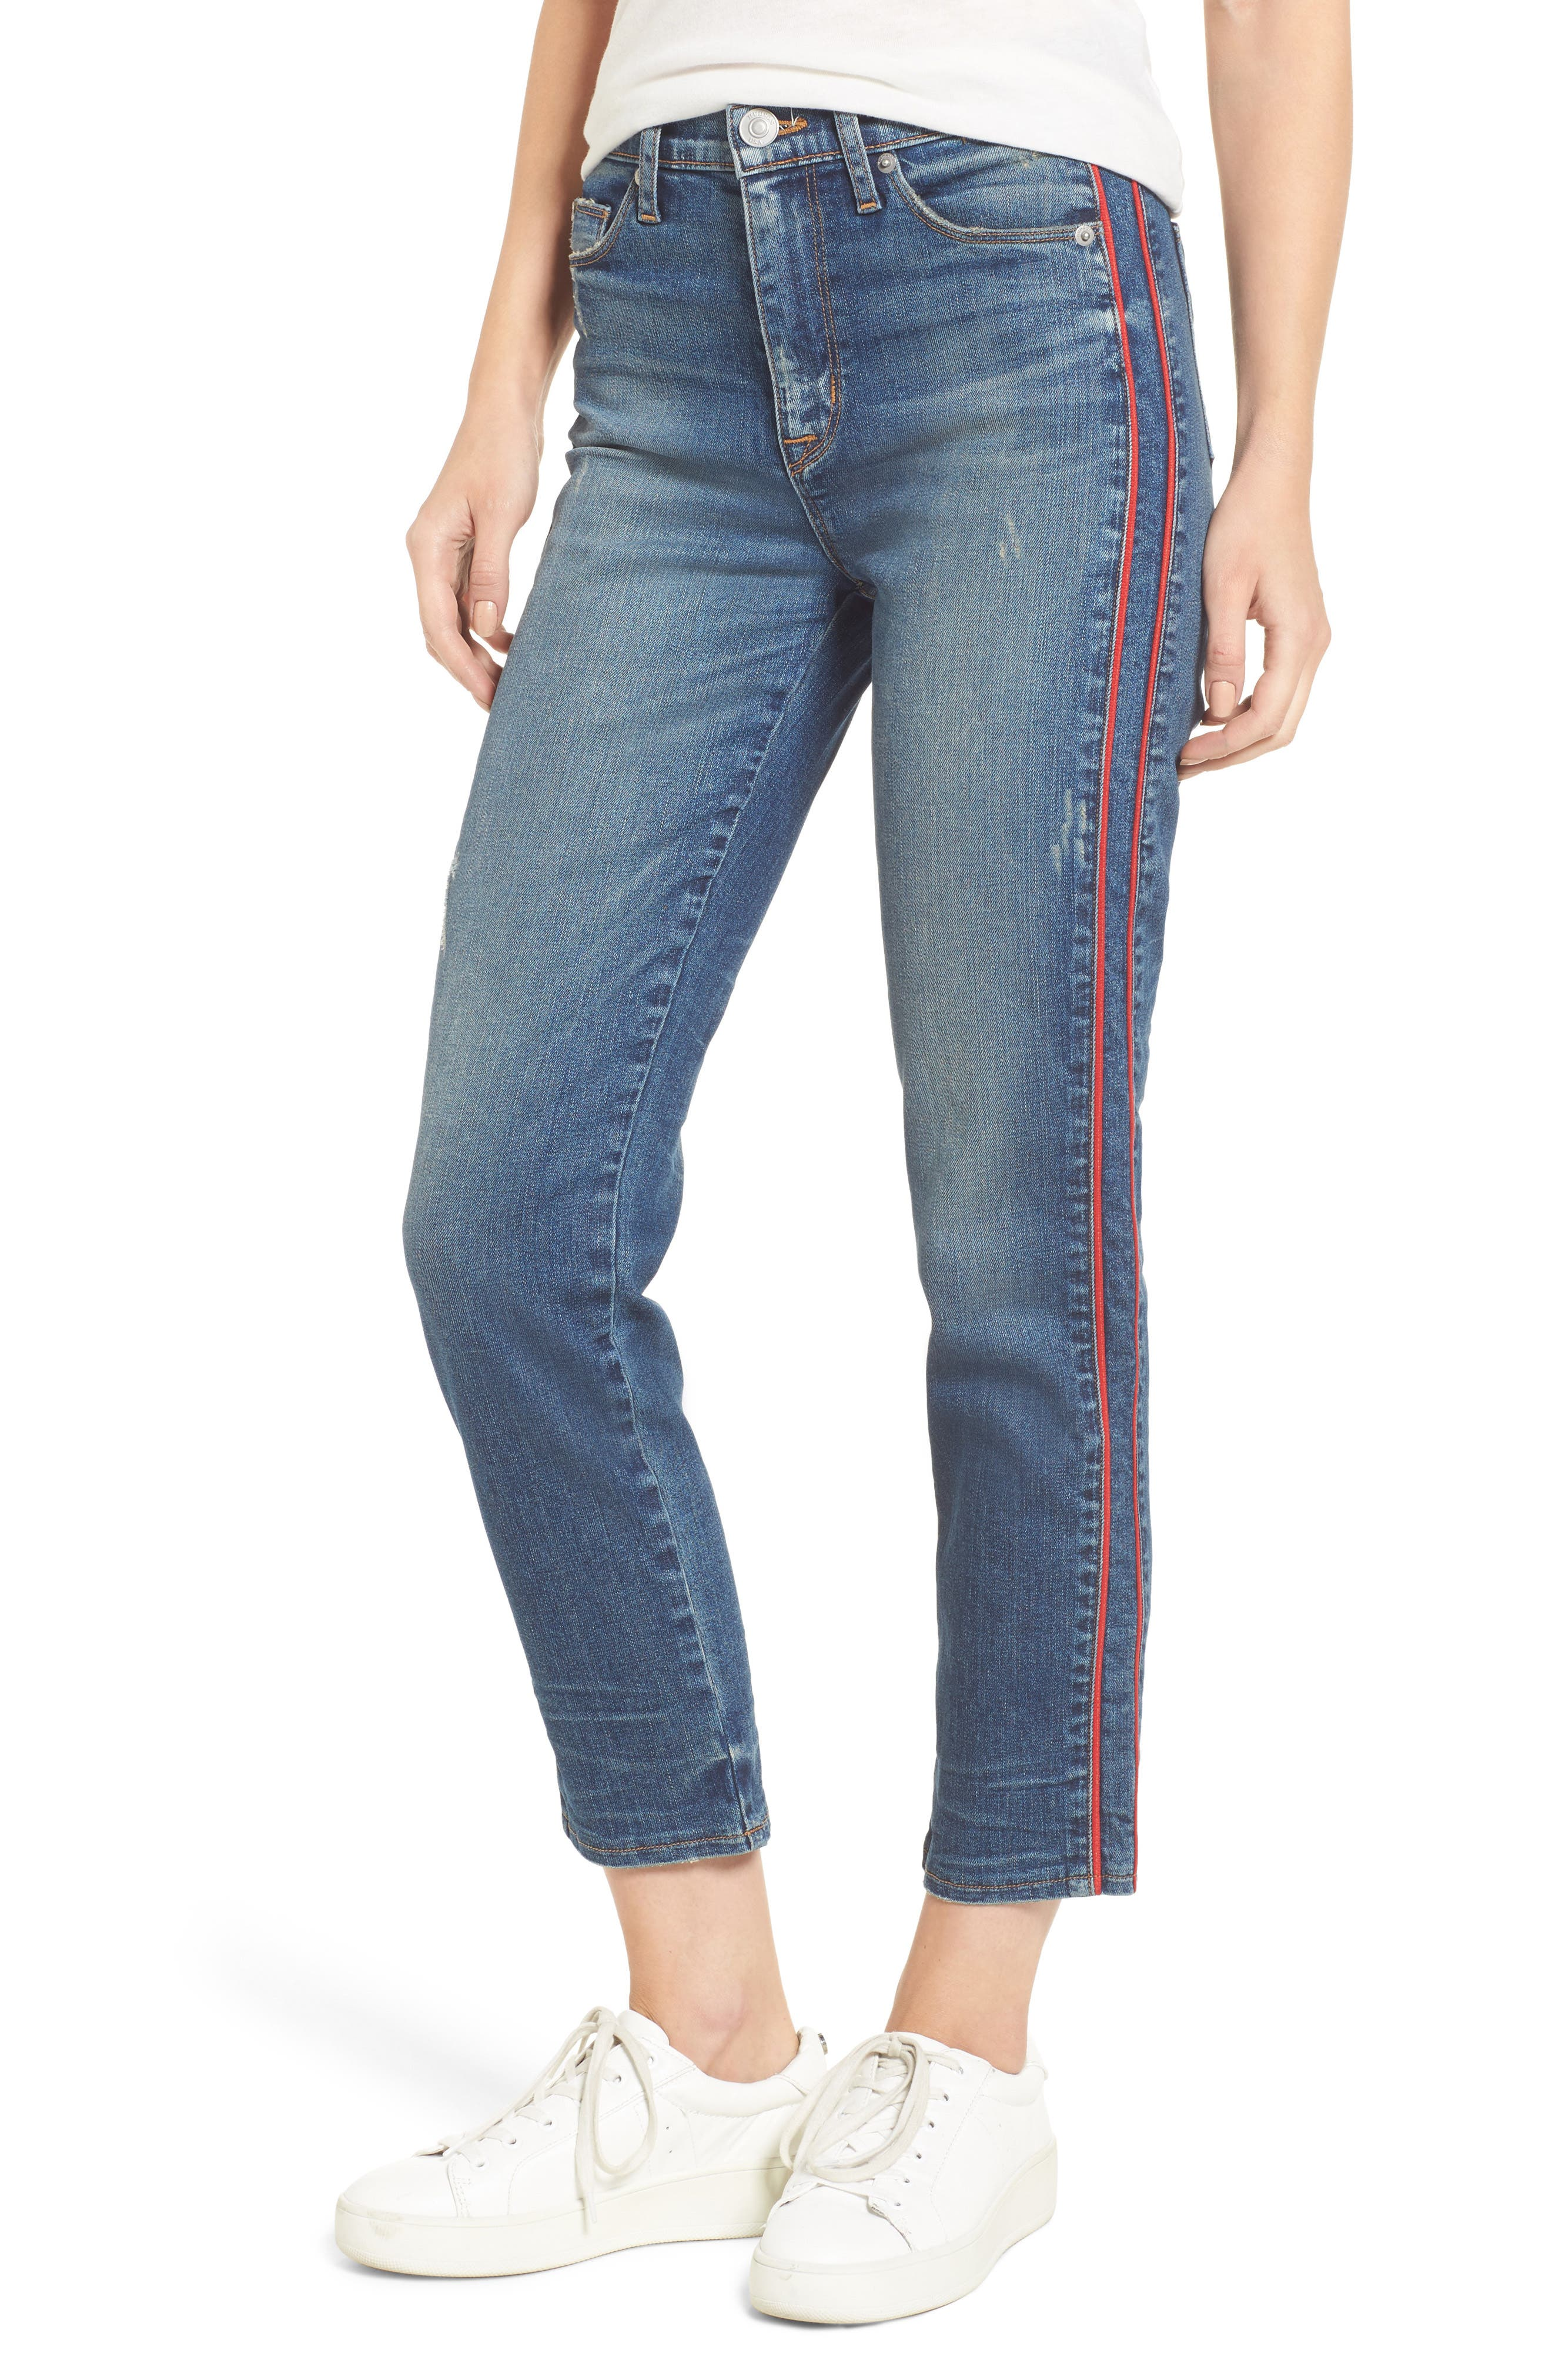 Alternate Image 1 Selected - Hudson Jeans Zoeey High Waist Crop Jeans (Reform)